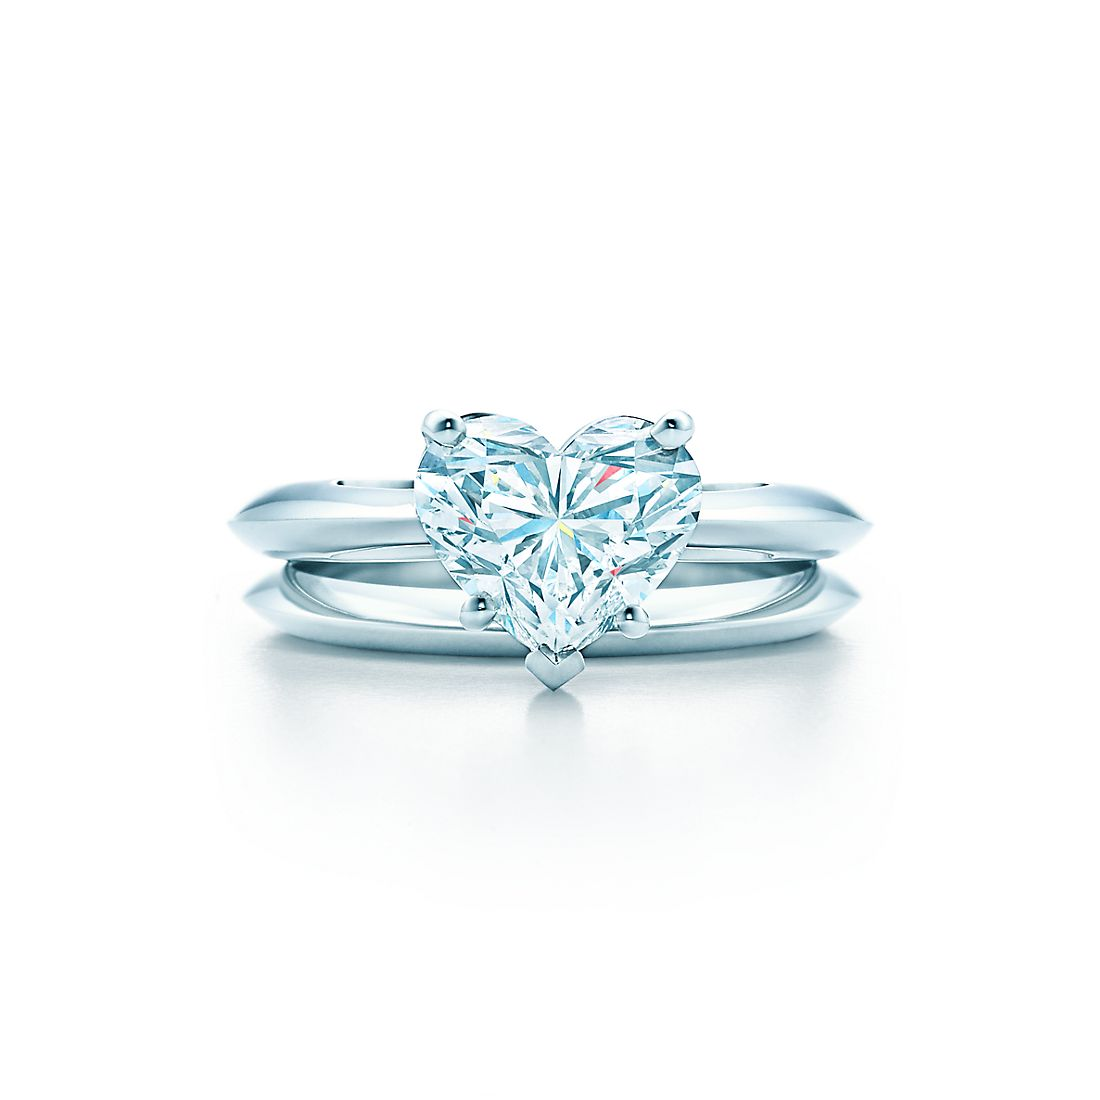 tacori difference even engagement makes a petite pin halo subtle rings com style crescent